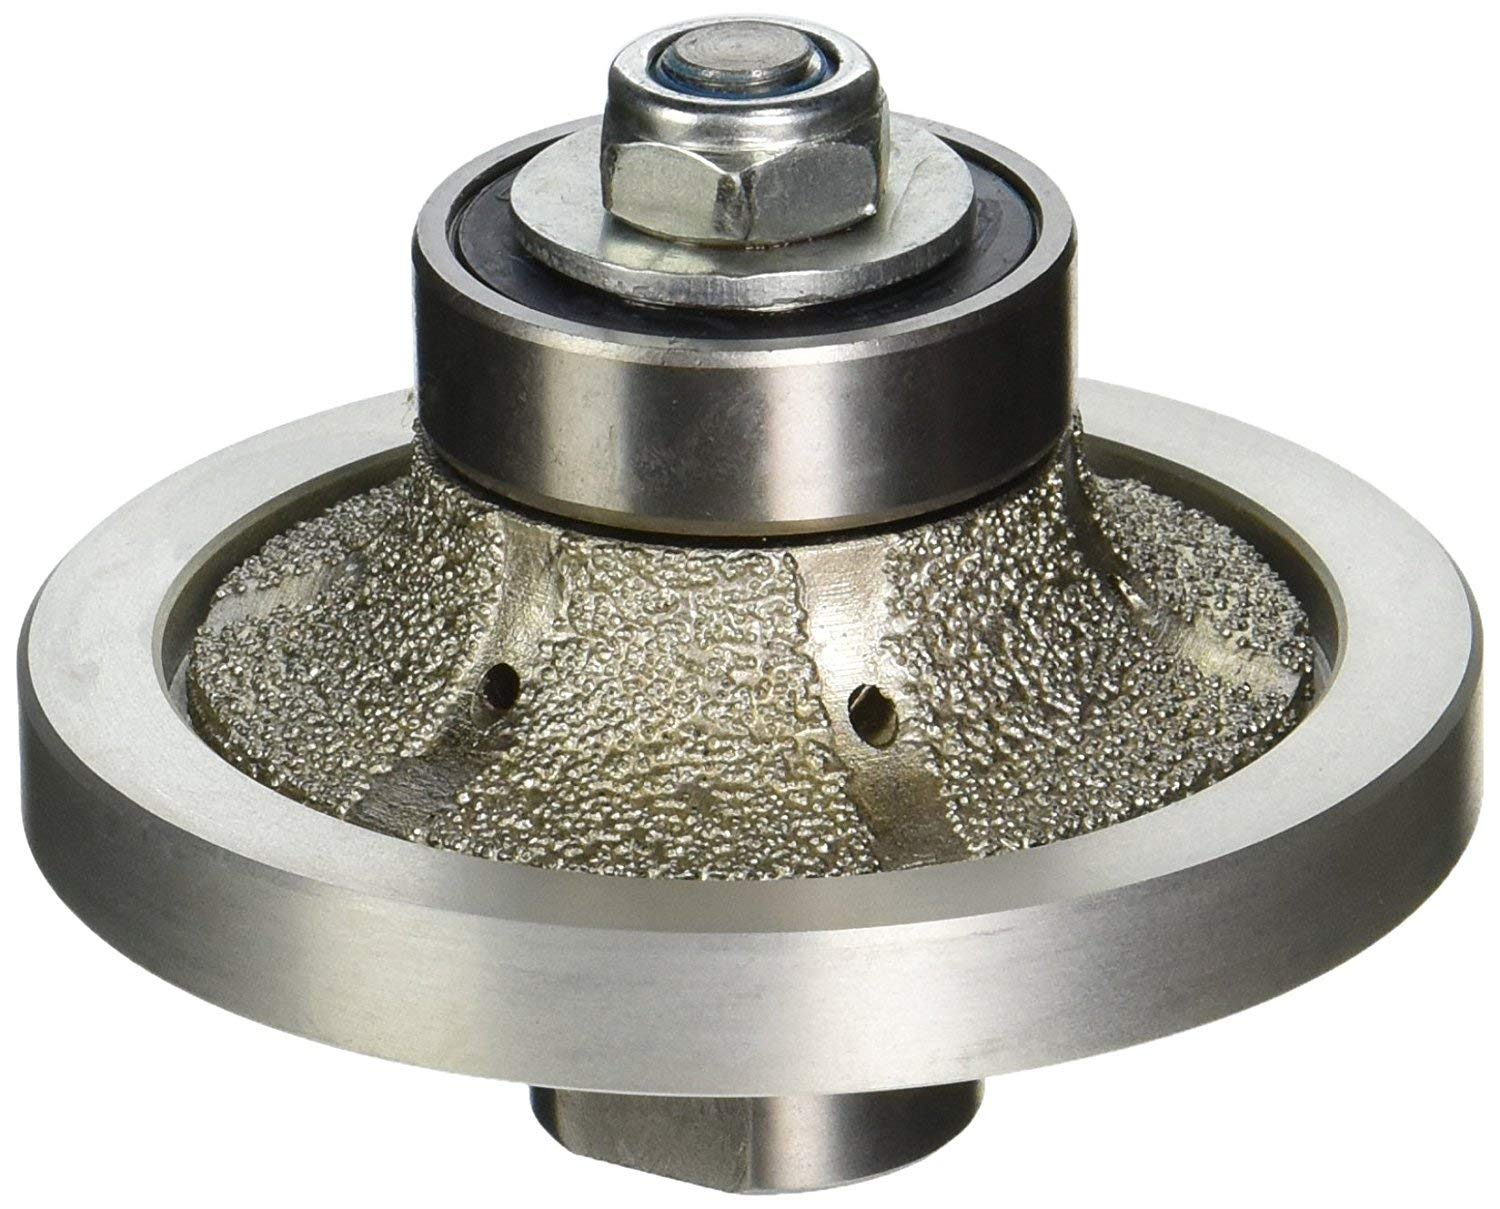 3/16 Inch 3/8 Inch 1/2 Inch 3/4 Inch 1 Inch 1 1/4 Inch Diamond Round over Bull nose Router Bit profile grinding wheel engineered stone Concrete granite marble quartz counter top edge shaping repair